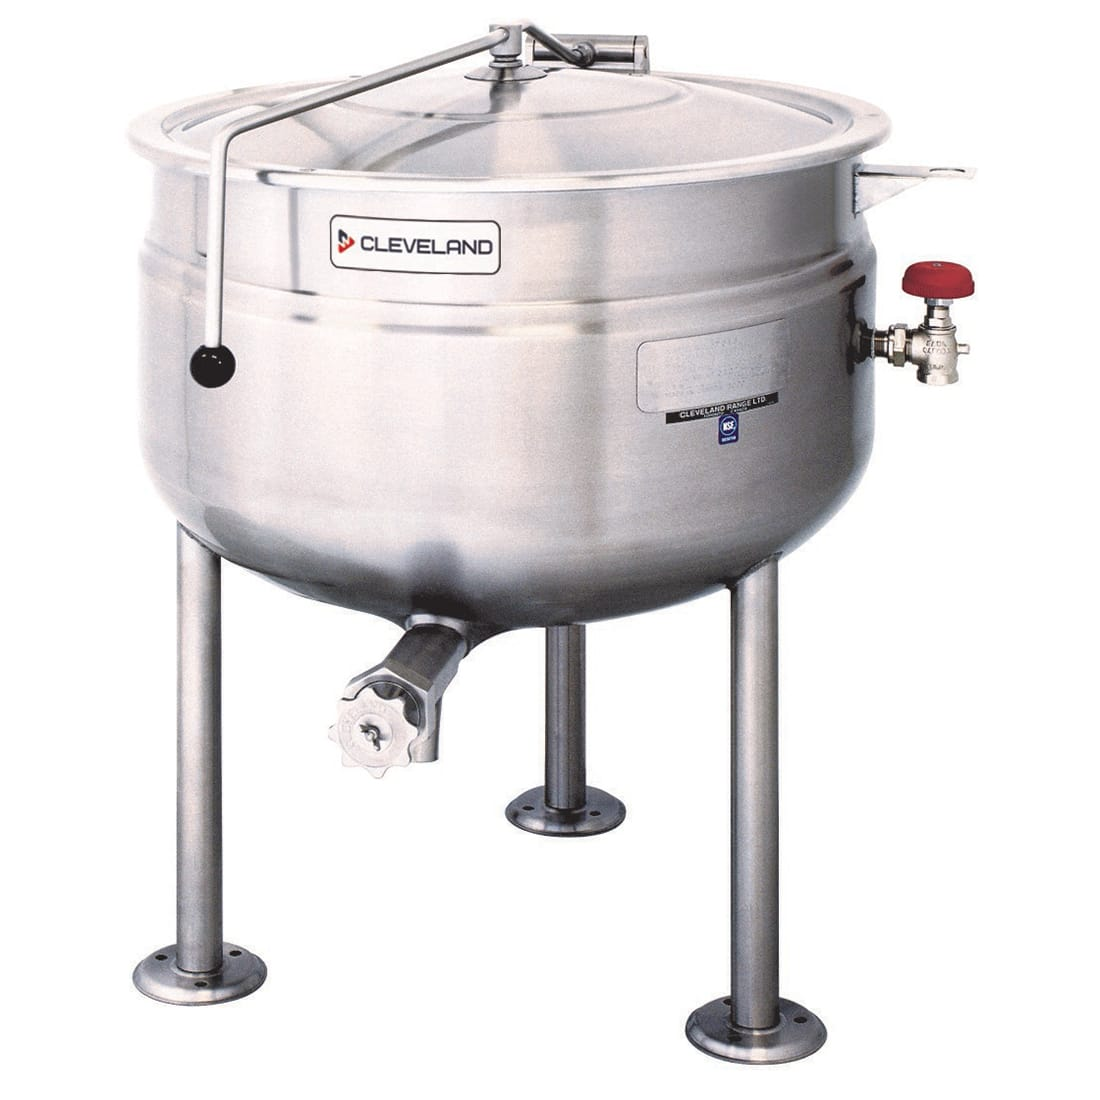 Cleveland KDL-40-SH 40 Gallon Short Full Direct Steam Kettle w/ Solid State, Open Tri-Leg